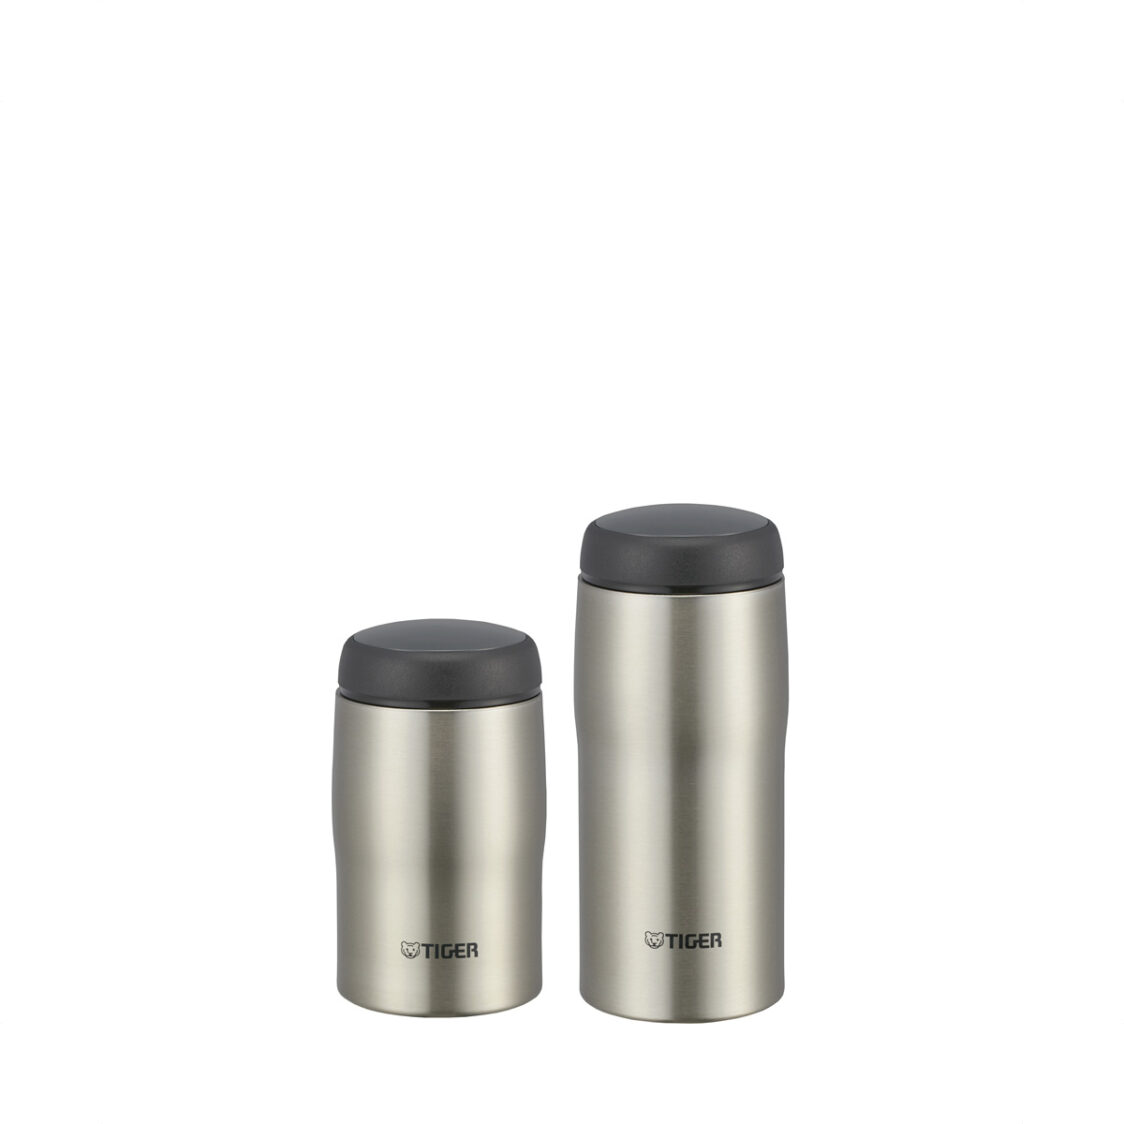 Tiger 240ml360ml Double Stainless Steel Mug Set Made In Japan Clear Stainless